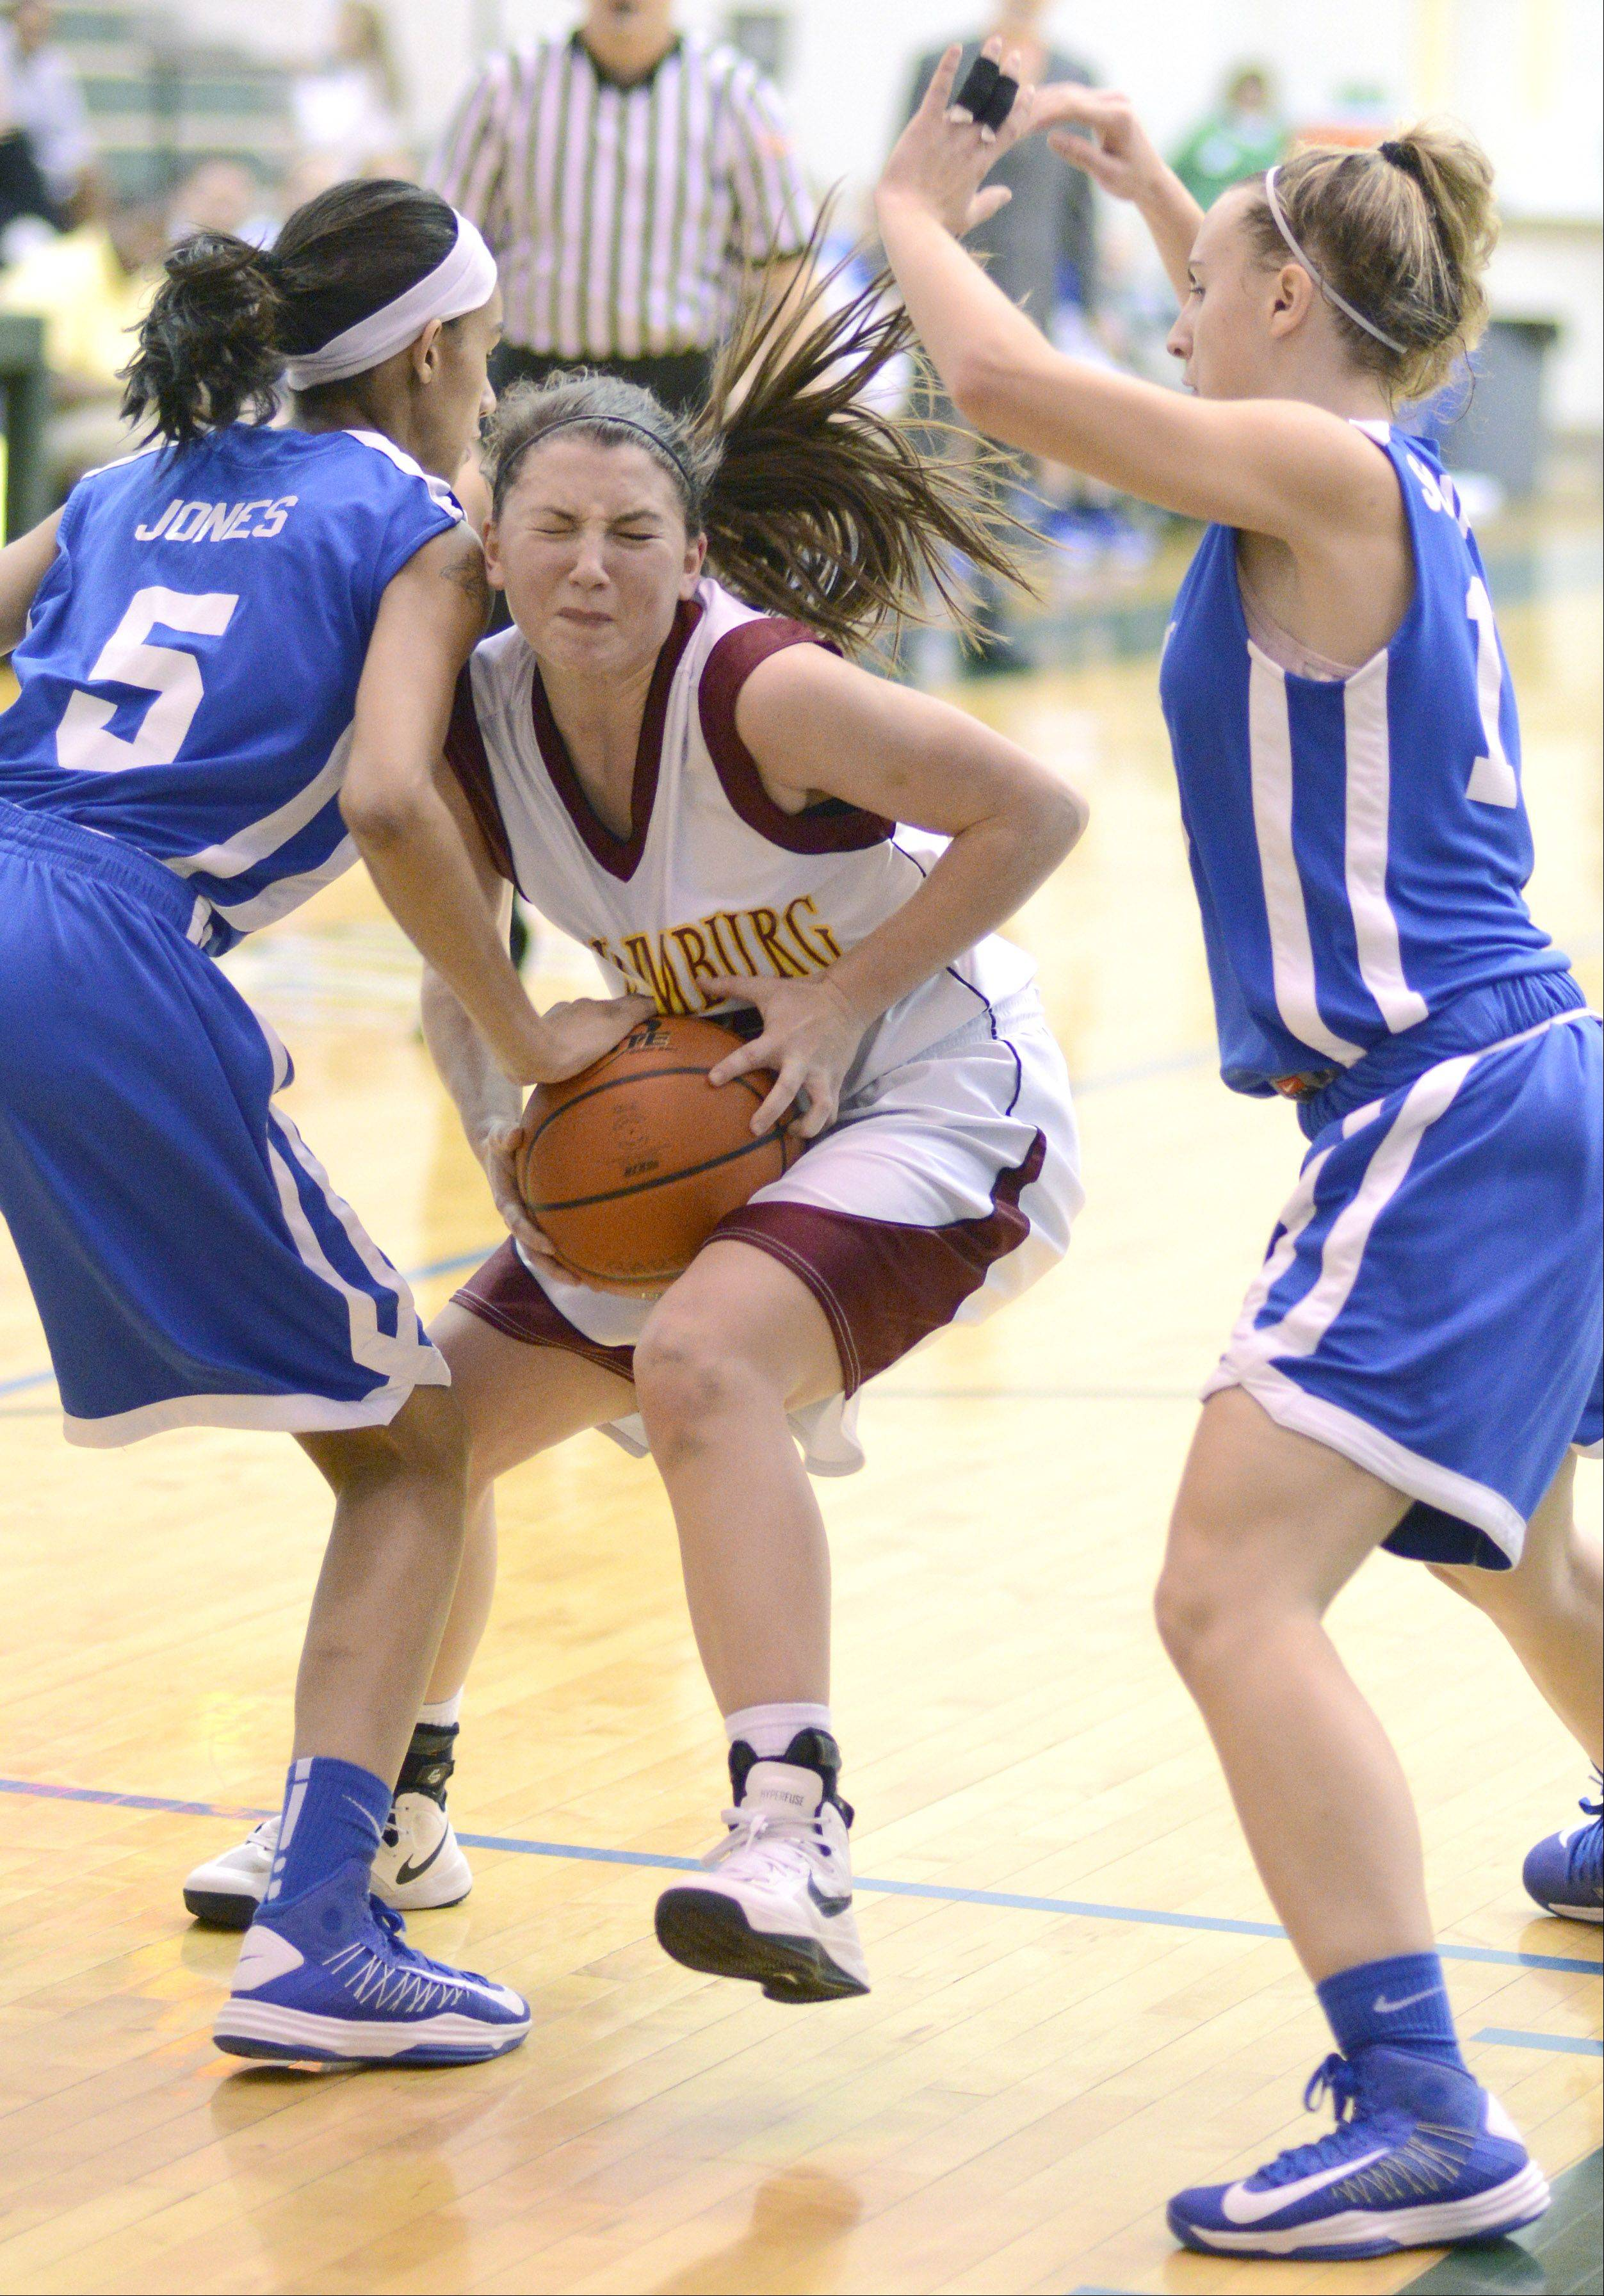 Schaumburg�s Amanda Kelly fights through a block by Wheaton North in the second quarter of the Class 4A regional game on Tuesday, February 19.